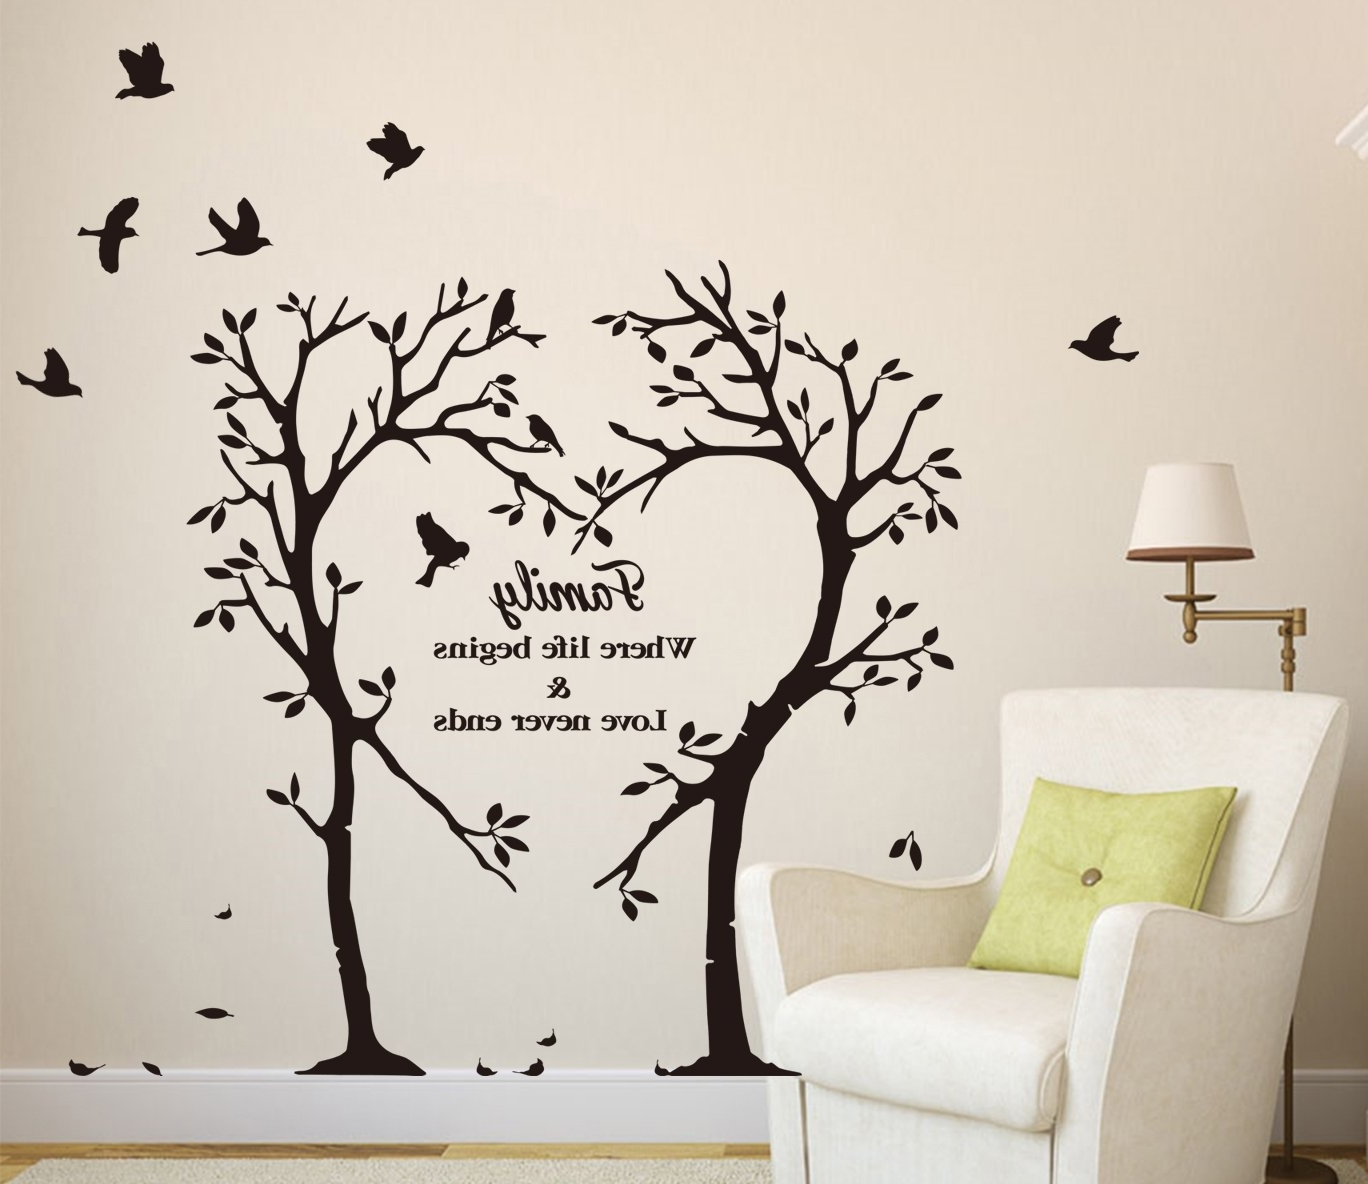 2018 Wall Tree Art Inside Large Family Inspirational Love Tree Wall Art Sticker, Wall Sticker (View 7 of 15)